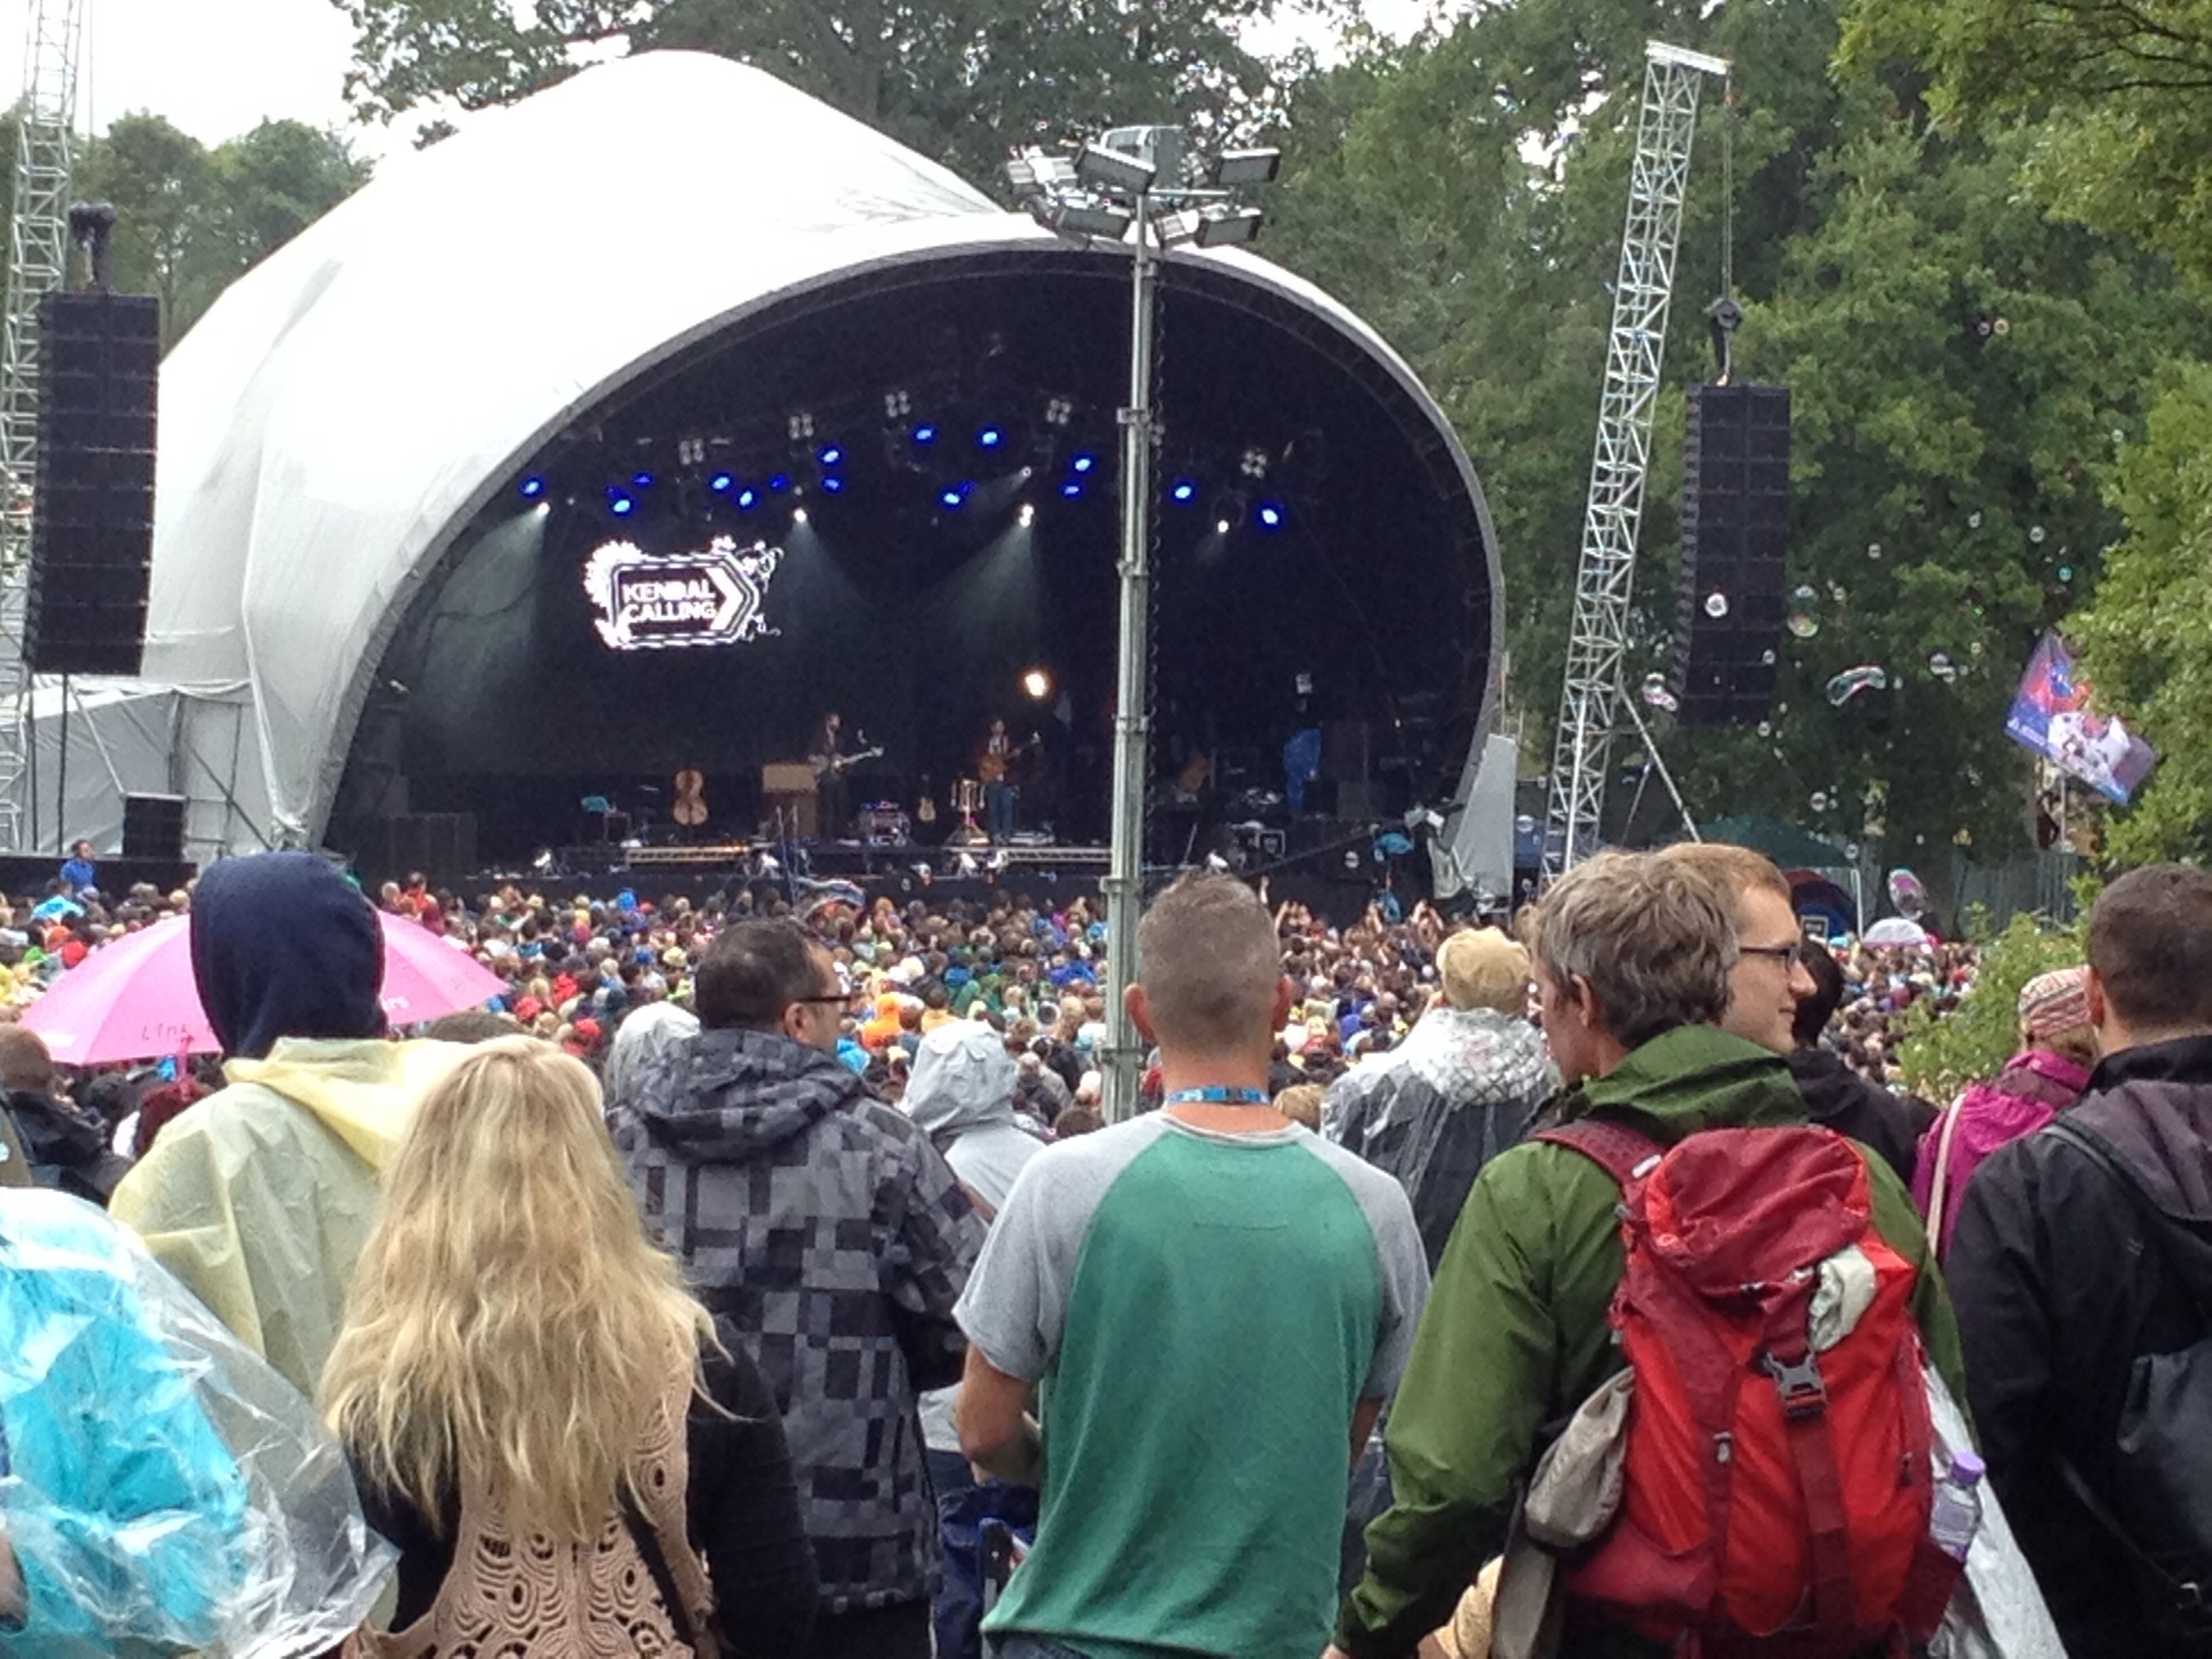 Brilliant fun at Kendal Calling this year (despite the